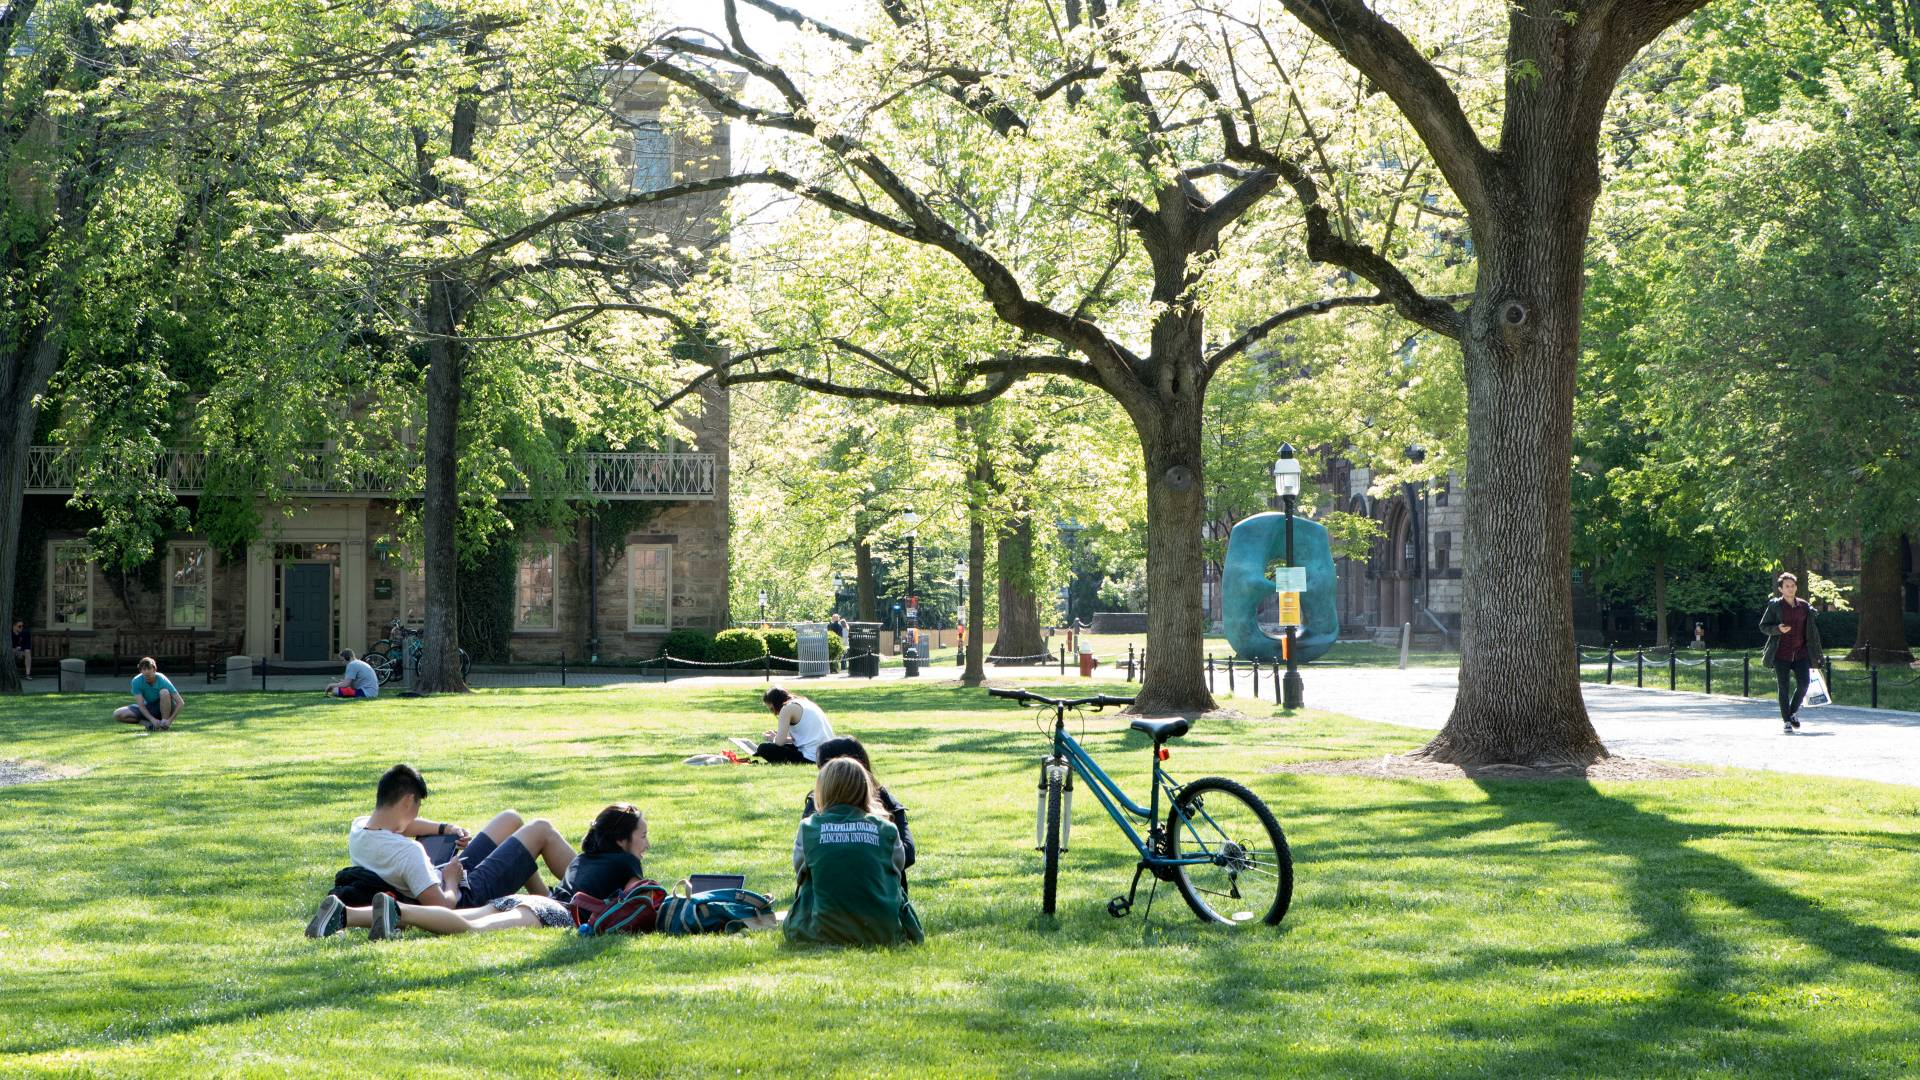 Students sitting on lawn on campus by Morrison Hall and Oval With Points sculpture